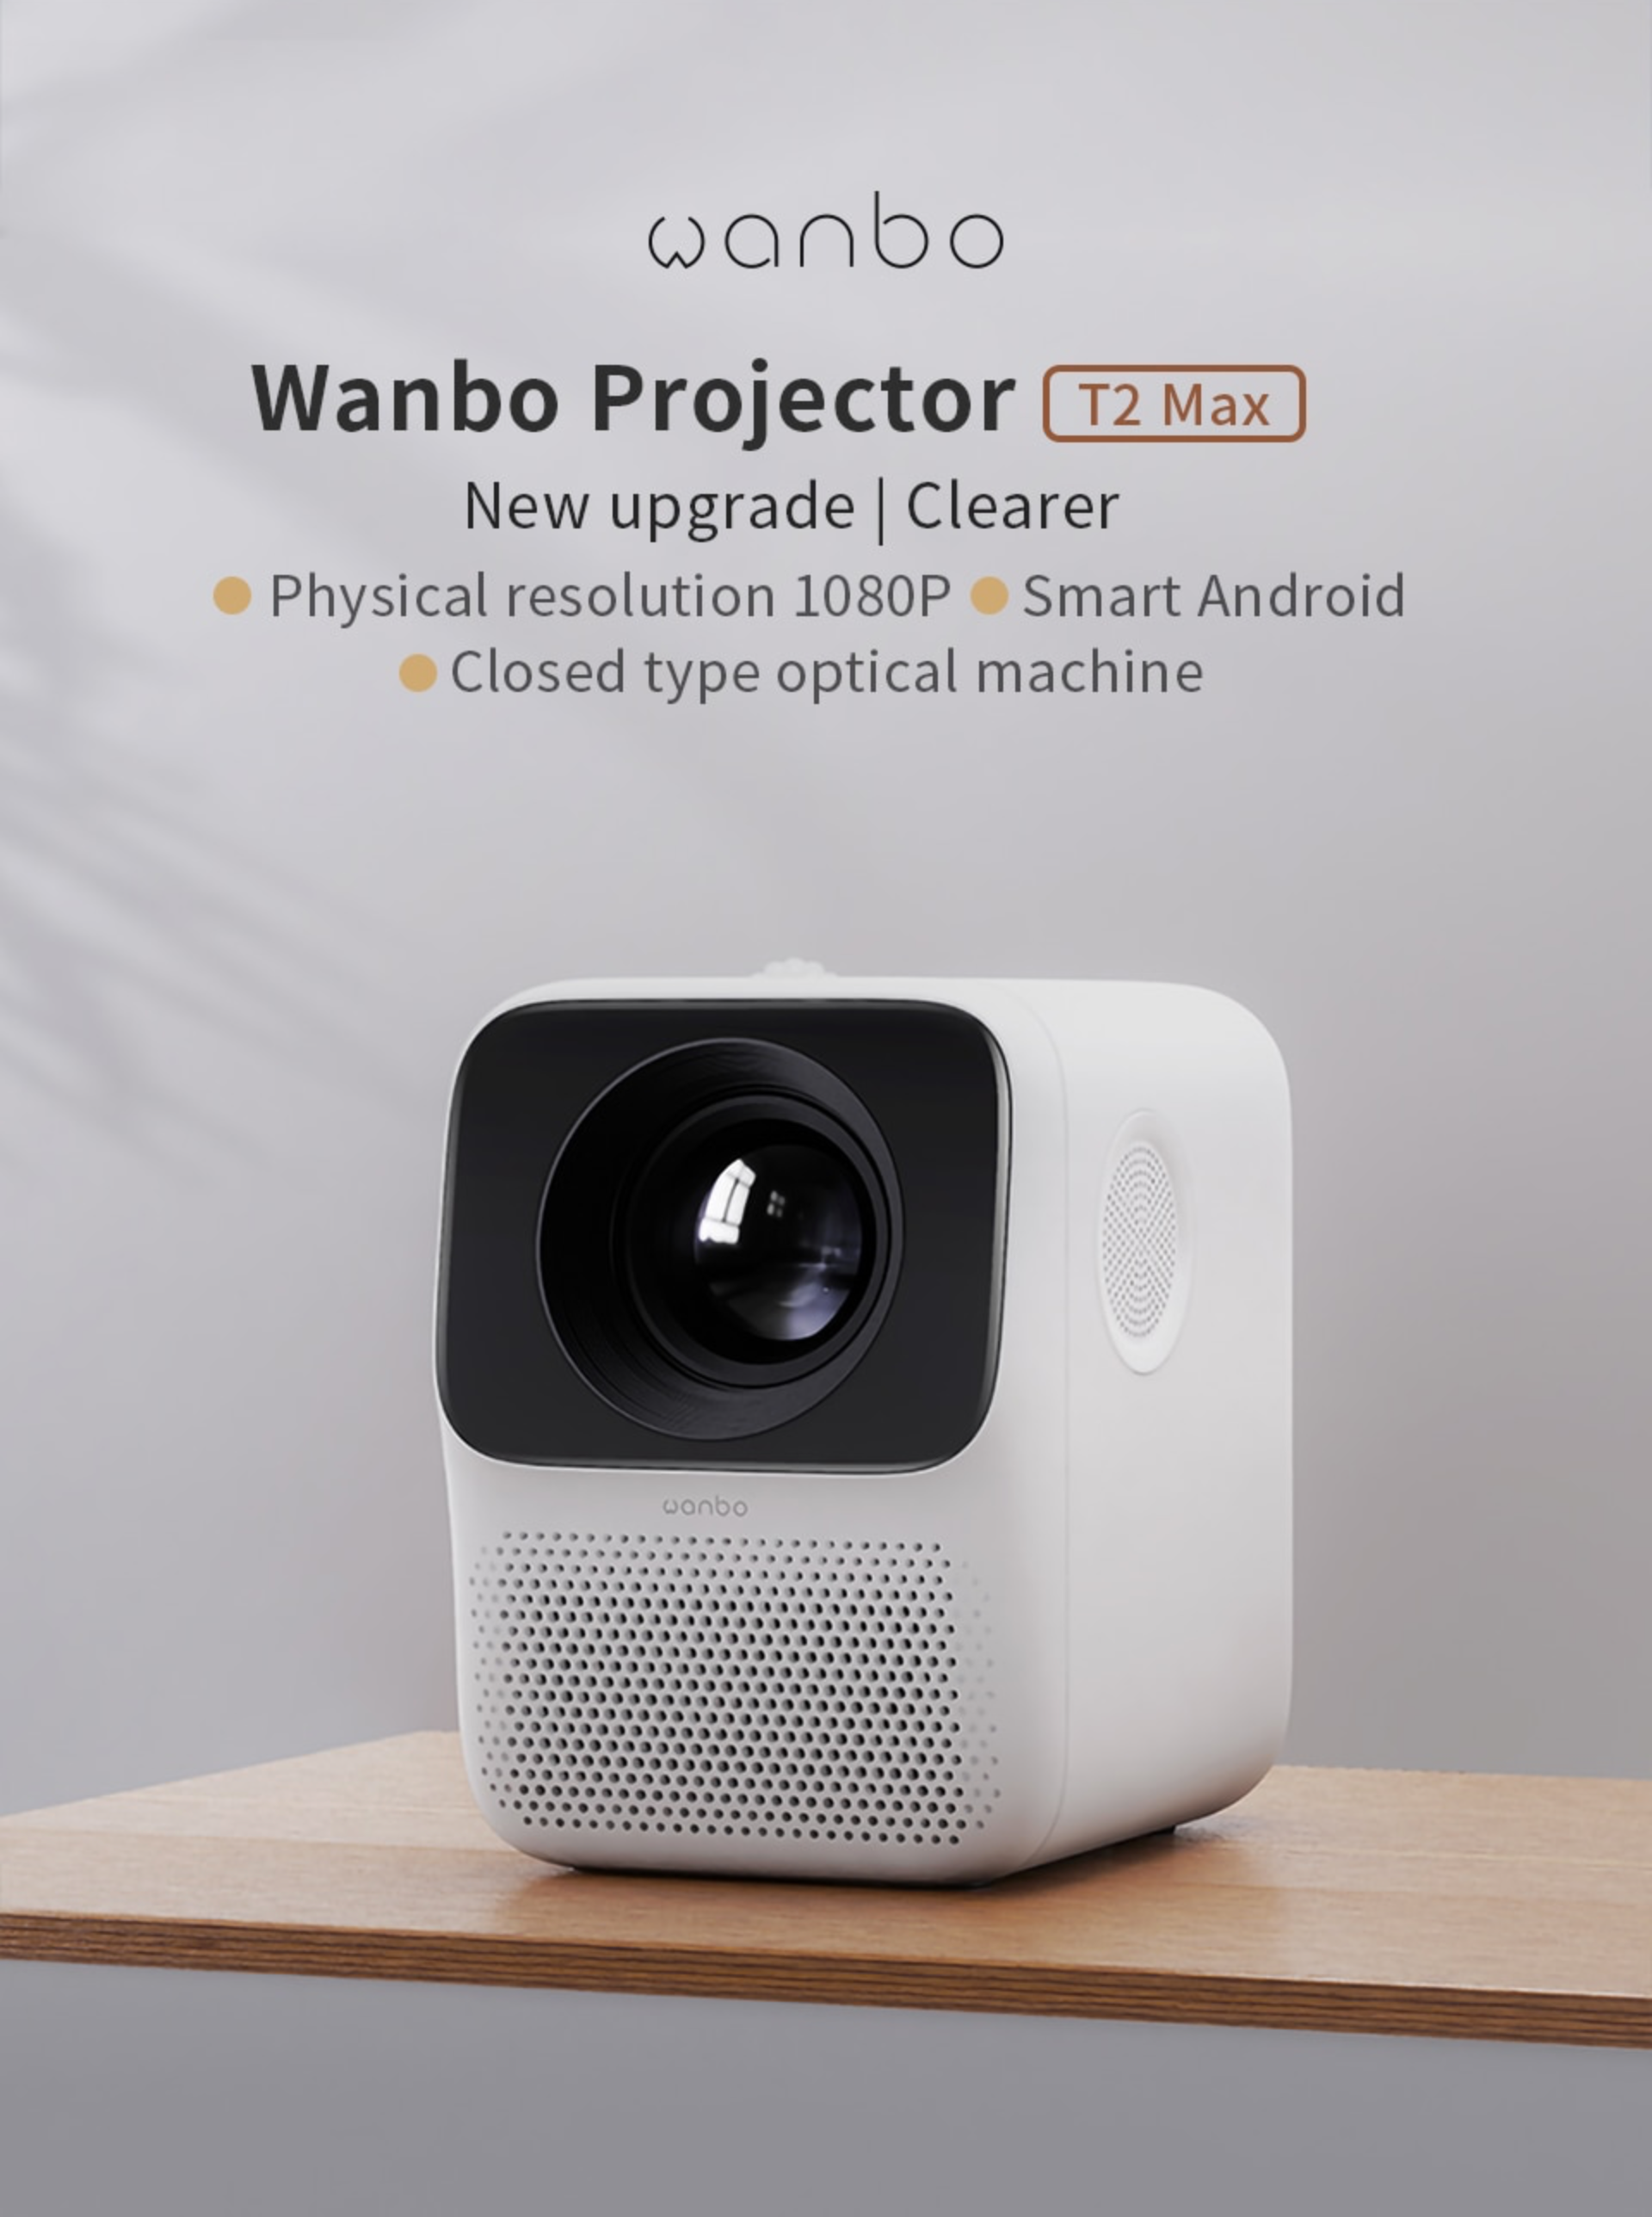 Wanbo t2 max 1080p projector in india furper online store